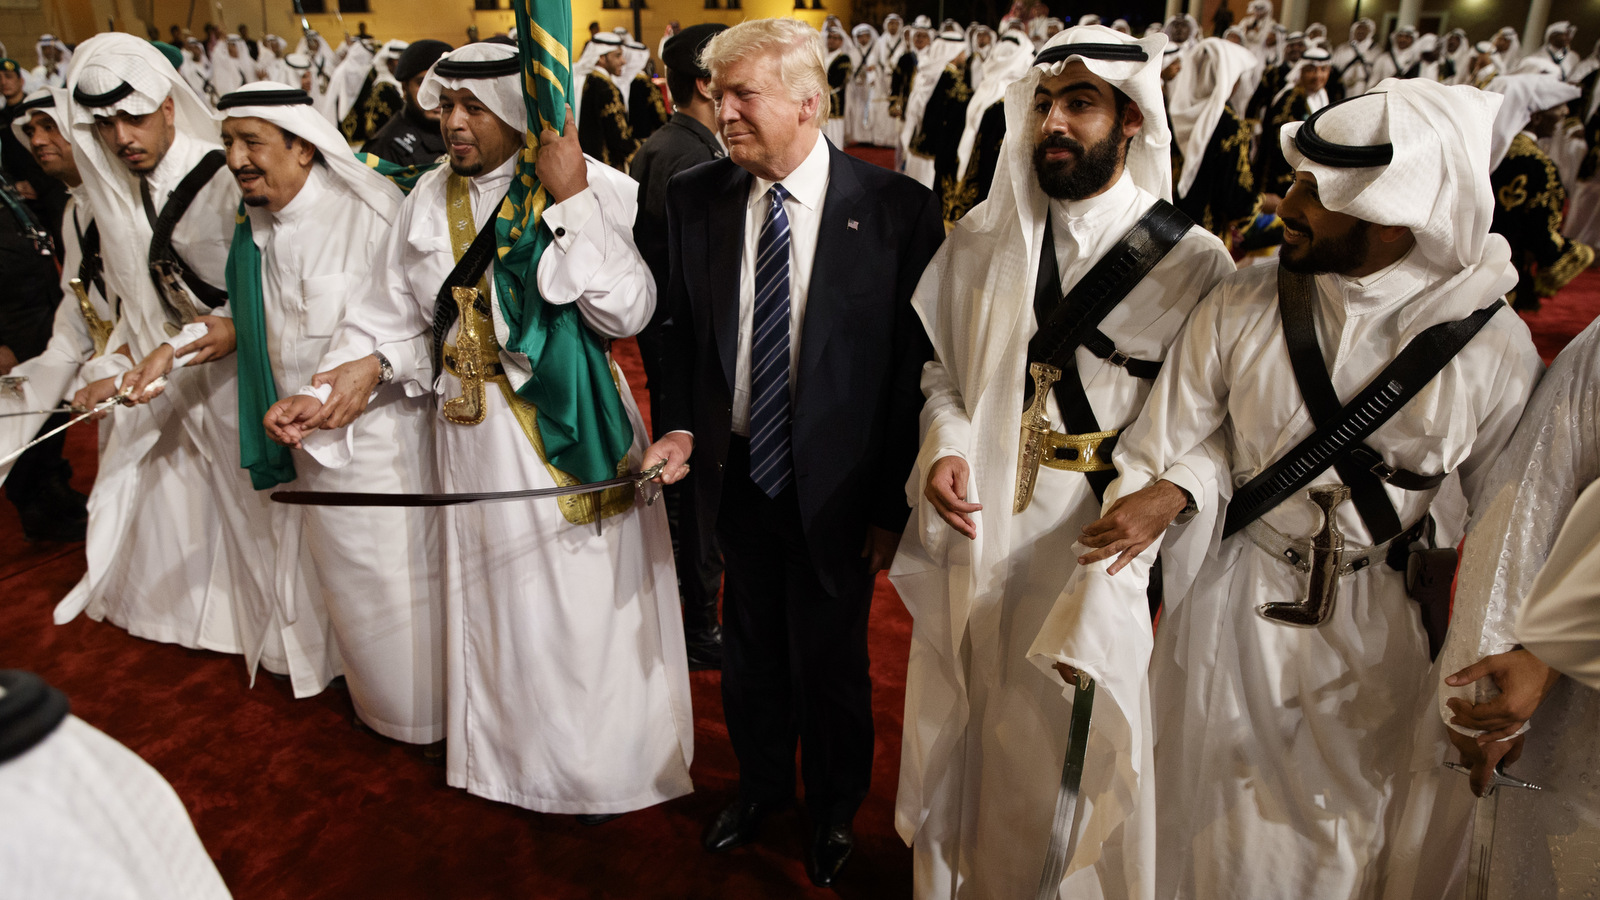 Donald Trump holds a sword and sways with traditional dancers during a welcome ceremony at Murabba Palace, in Riyadh, May 20, 2017. (AP/Evan Vucci)